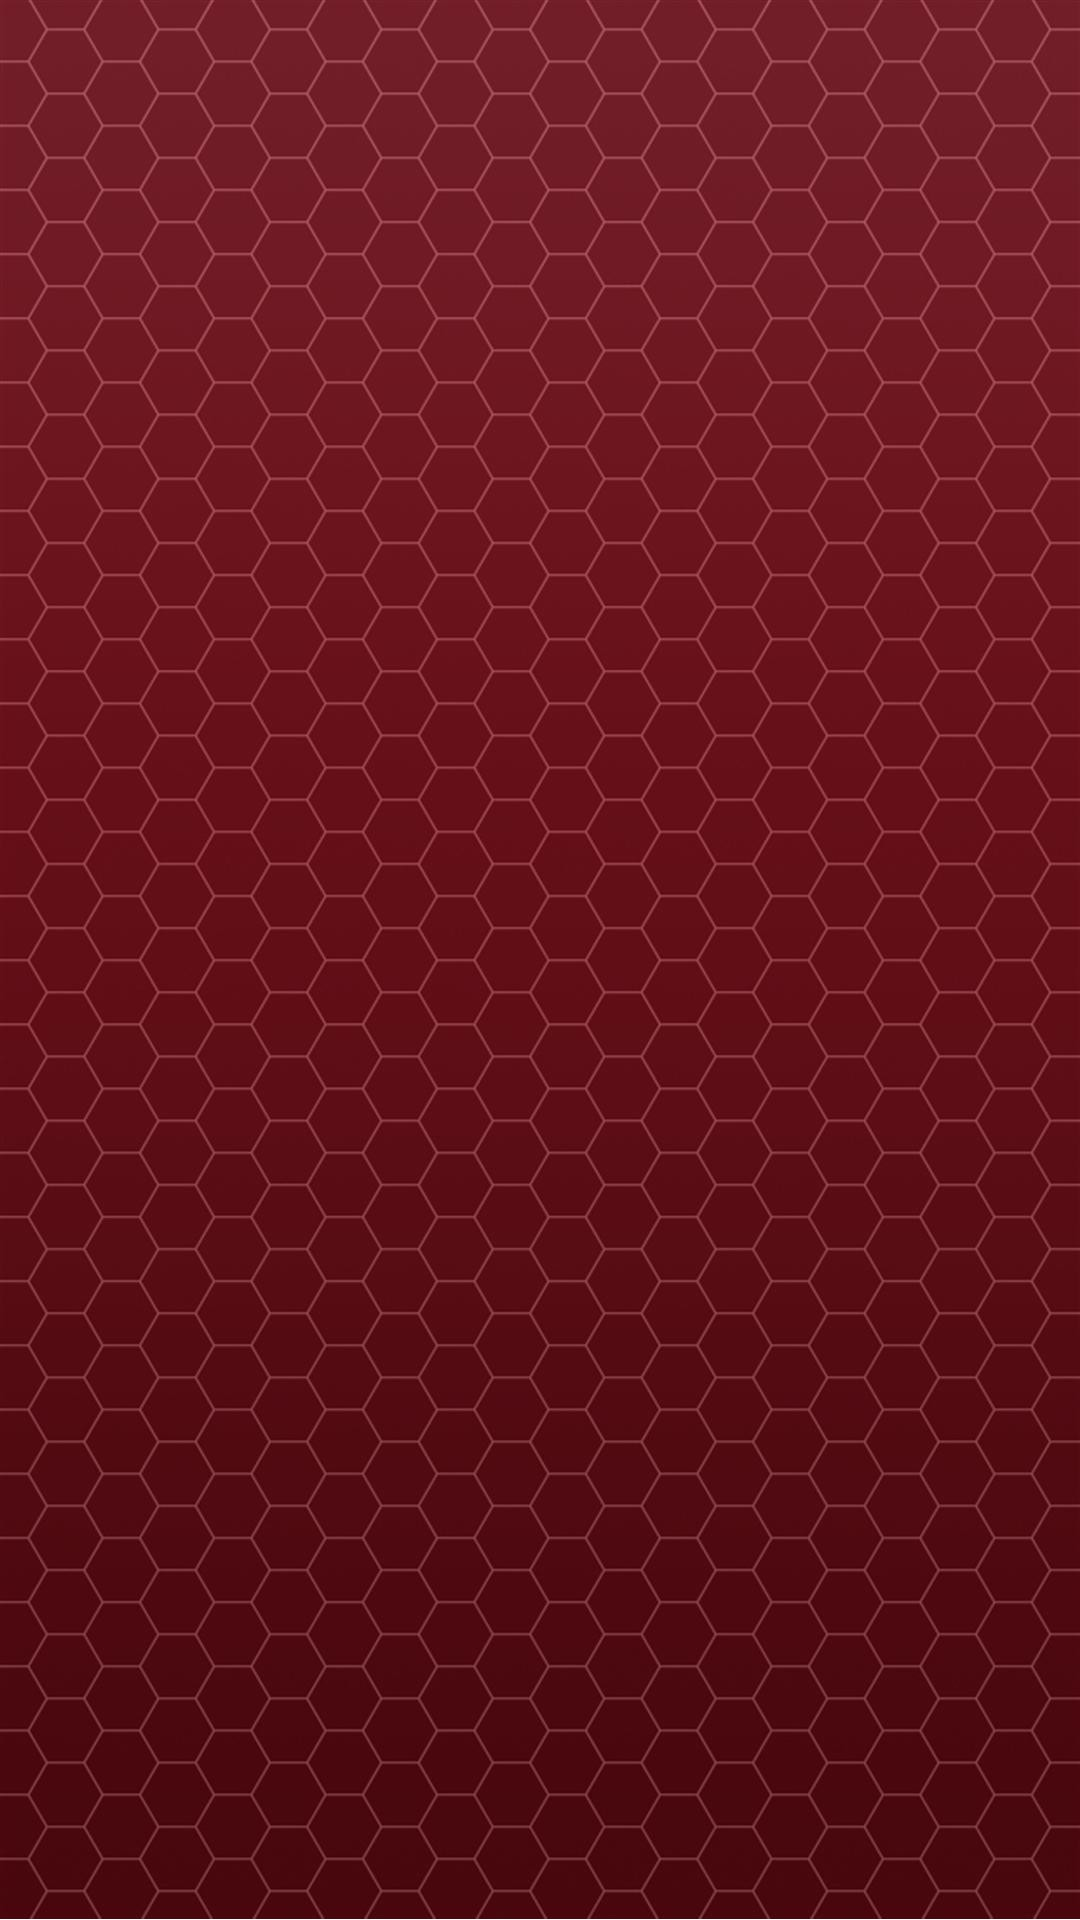 Honeycomb Red Pattern iPhone 6 Plus HD Wallpaper iPod Wallpaper HD 1080x1920